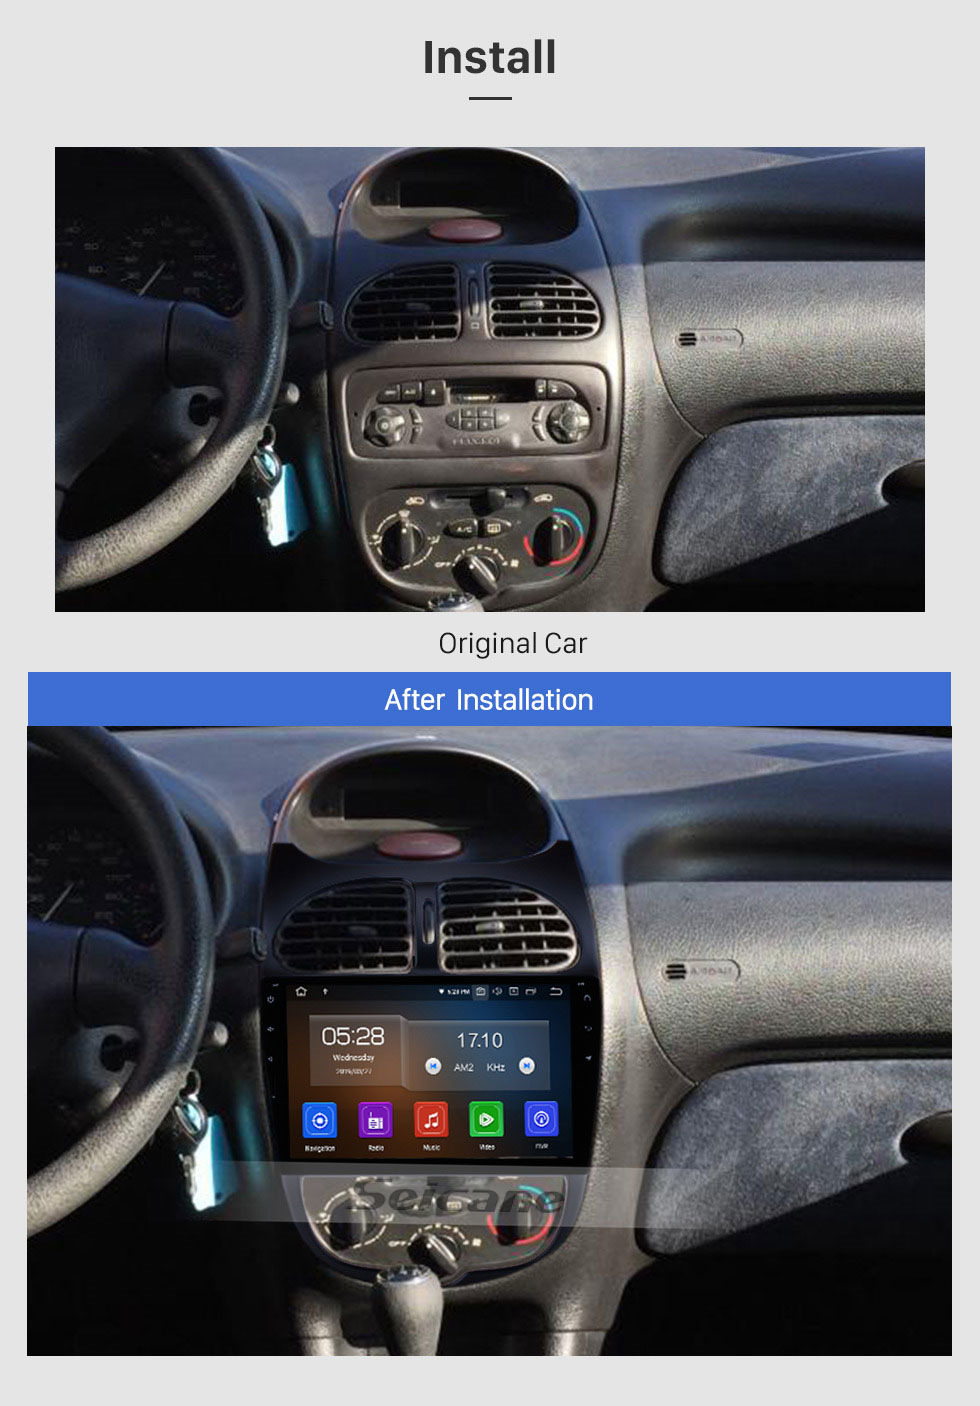 Seicane 9 inch Android 9.0 Touchscreen Autoradio for 2000-2016 PEUGEOT 206 Aftermarket GPS Navigation Bluetooth Music WIFI USB SWC Carplay support CD Player DAB DVR